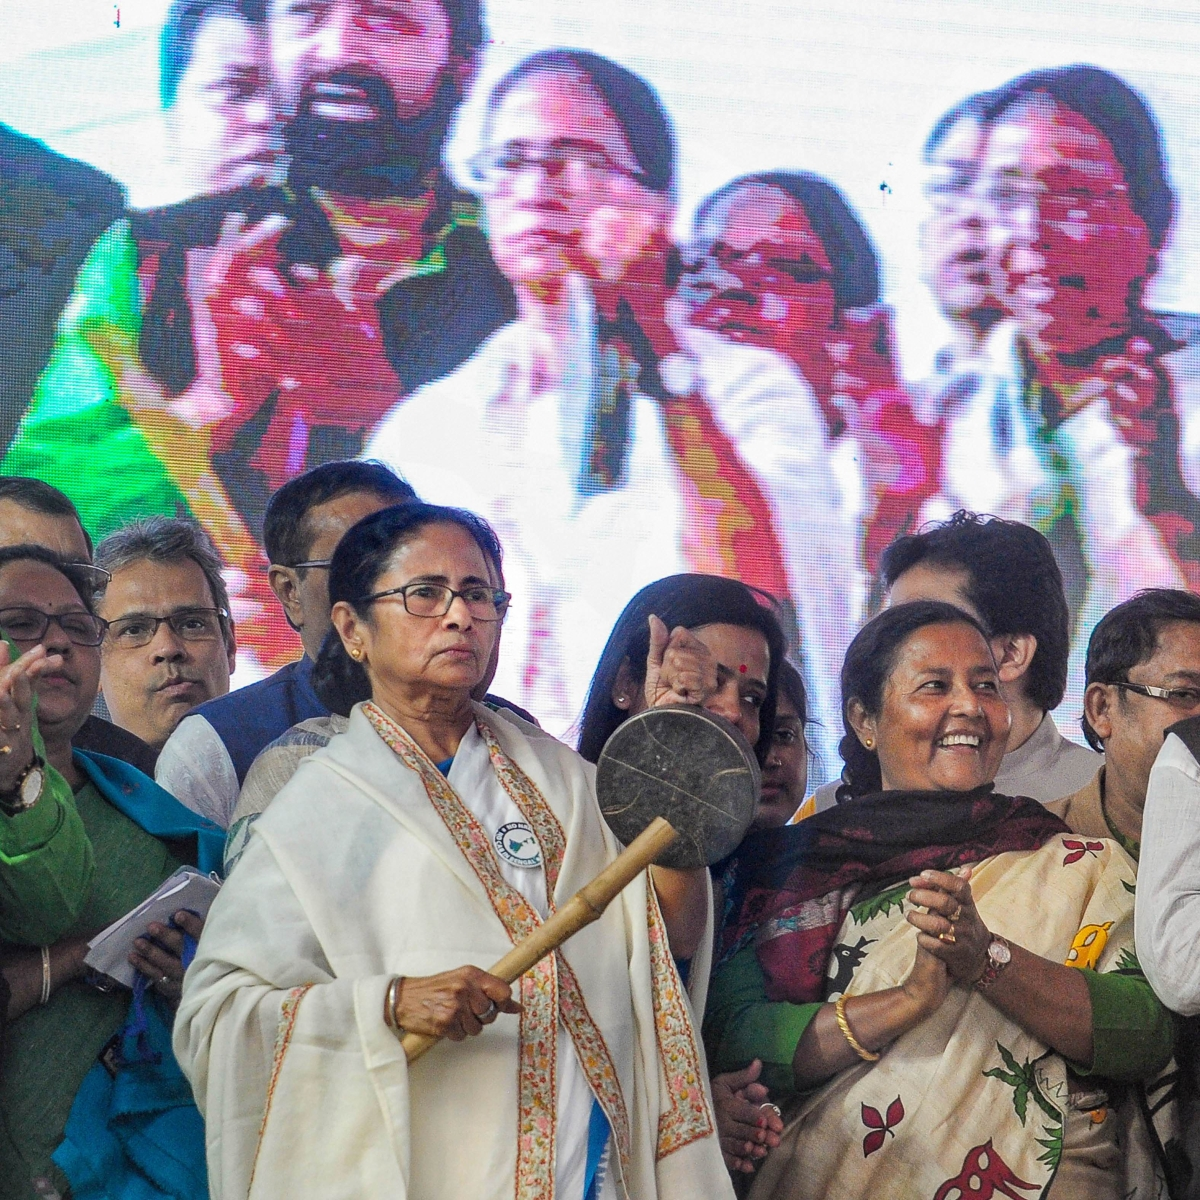 'BJP is a feku party, only interested in giving out fake news': Mamata slams Anurag Thakur, Yogi Adityanath; calls party divisive